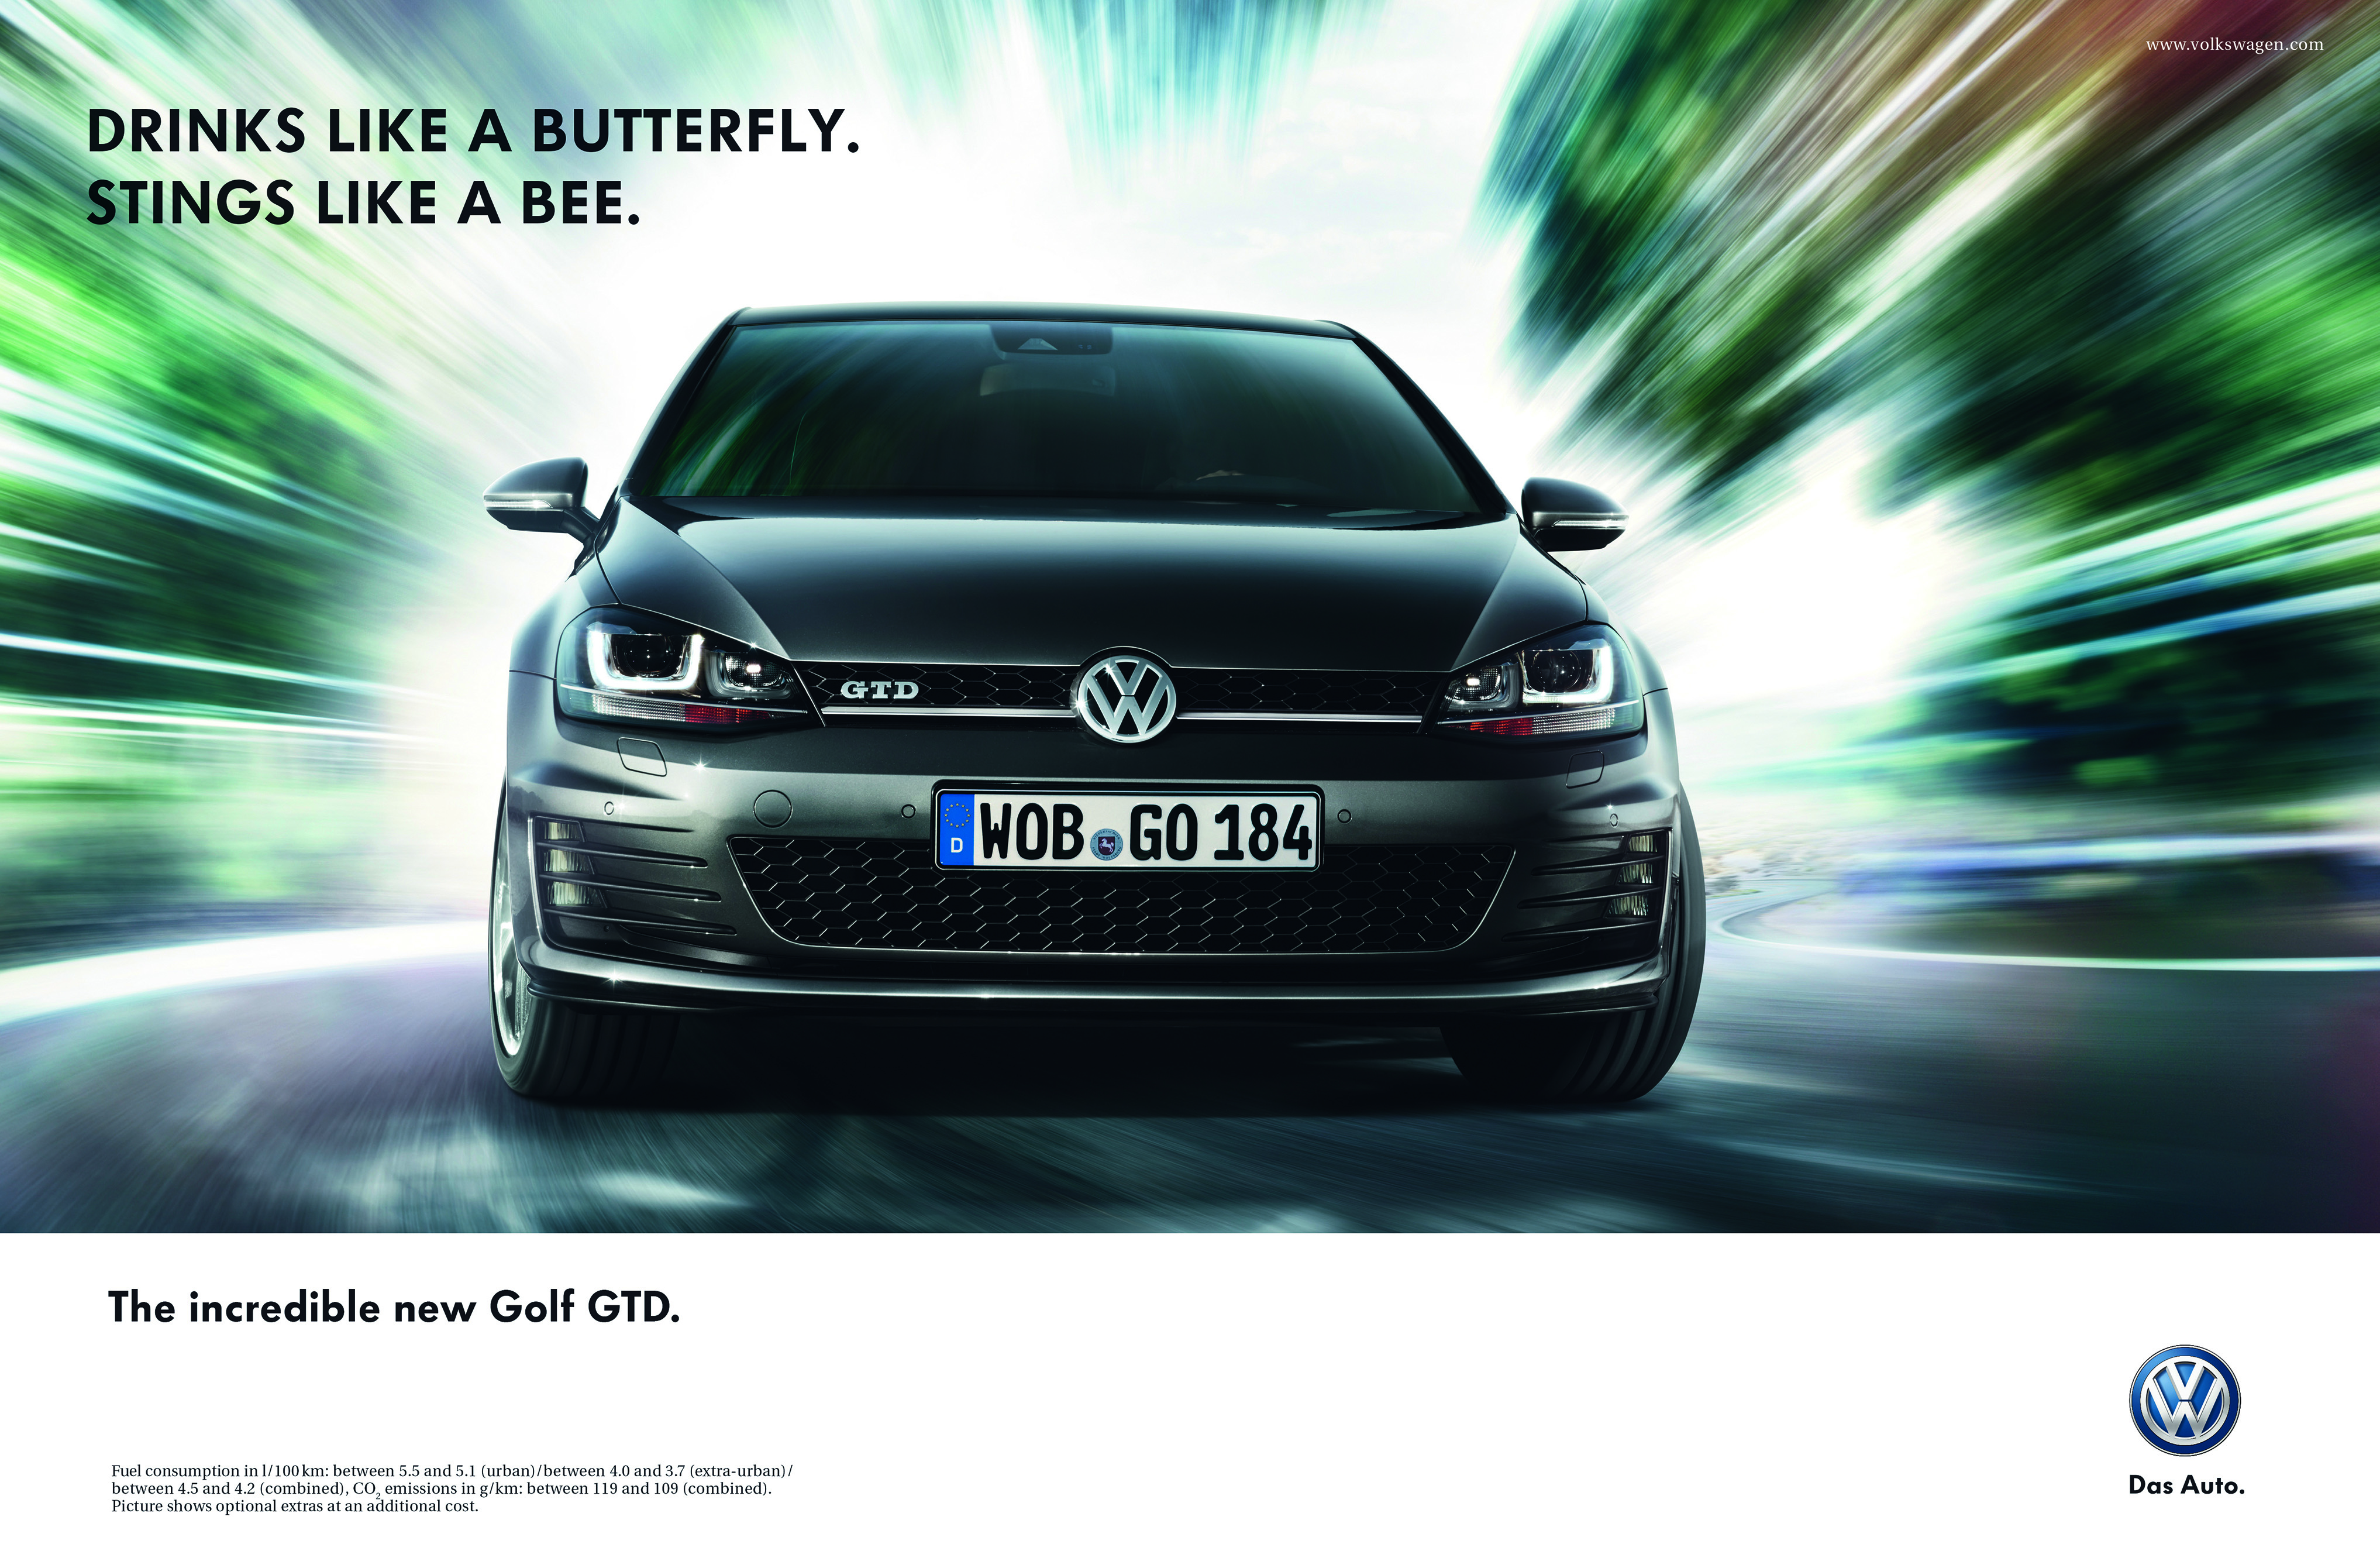 horsepower new news could mild golf hybrid with tsi available to reveals get as volkswagen com autoevolution be variant from hp r costs